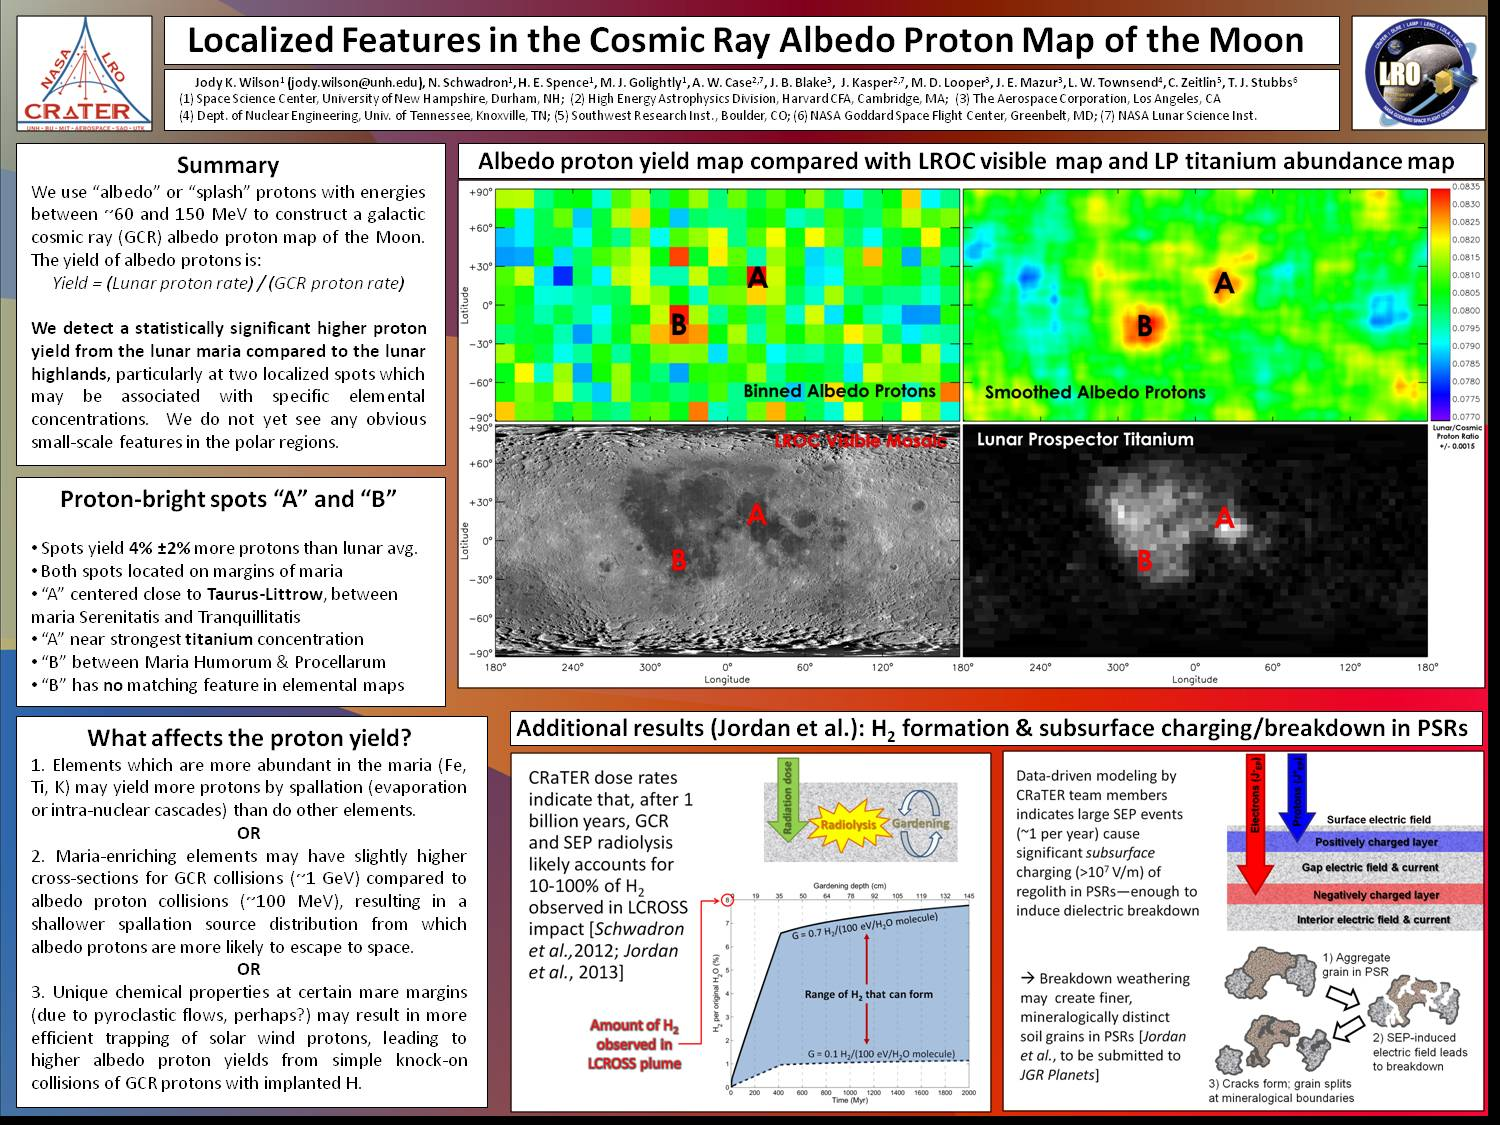 Localized Features In The Cosmic Ray Albedo Proton Map Of The Moon by jkwilson